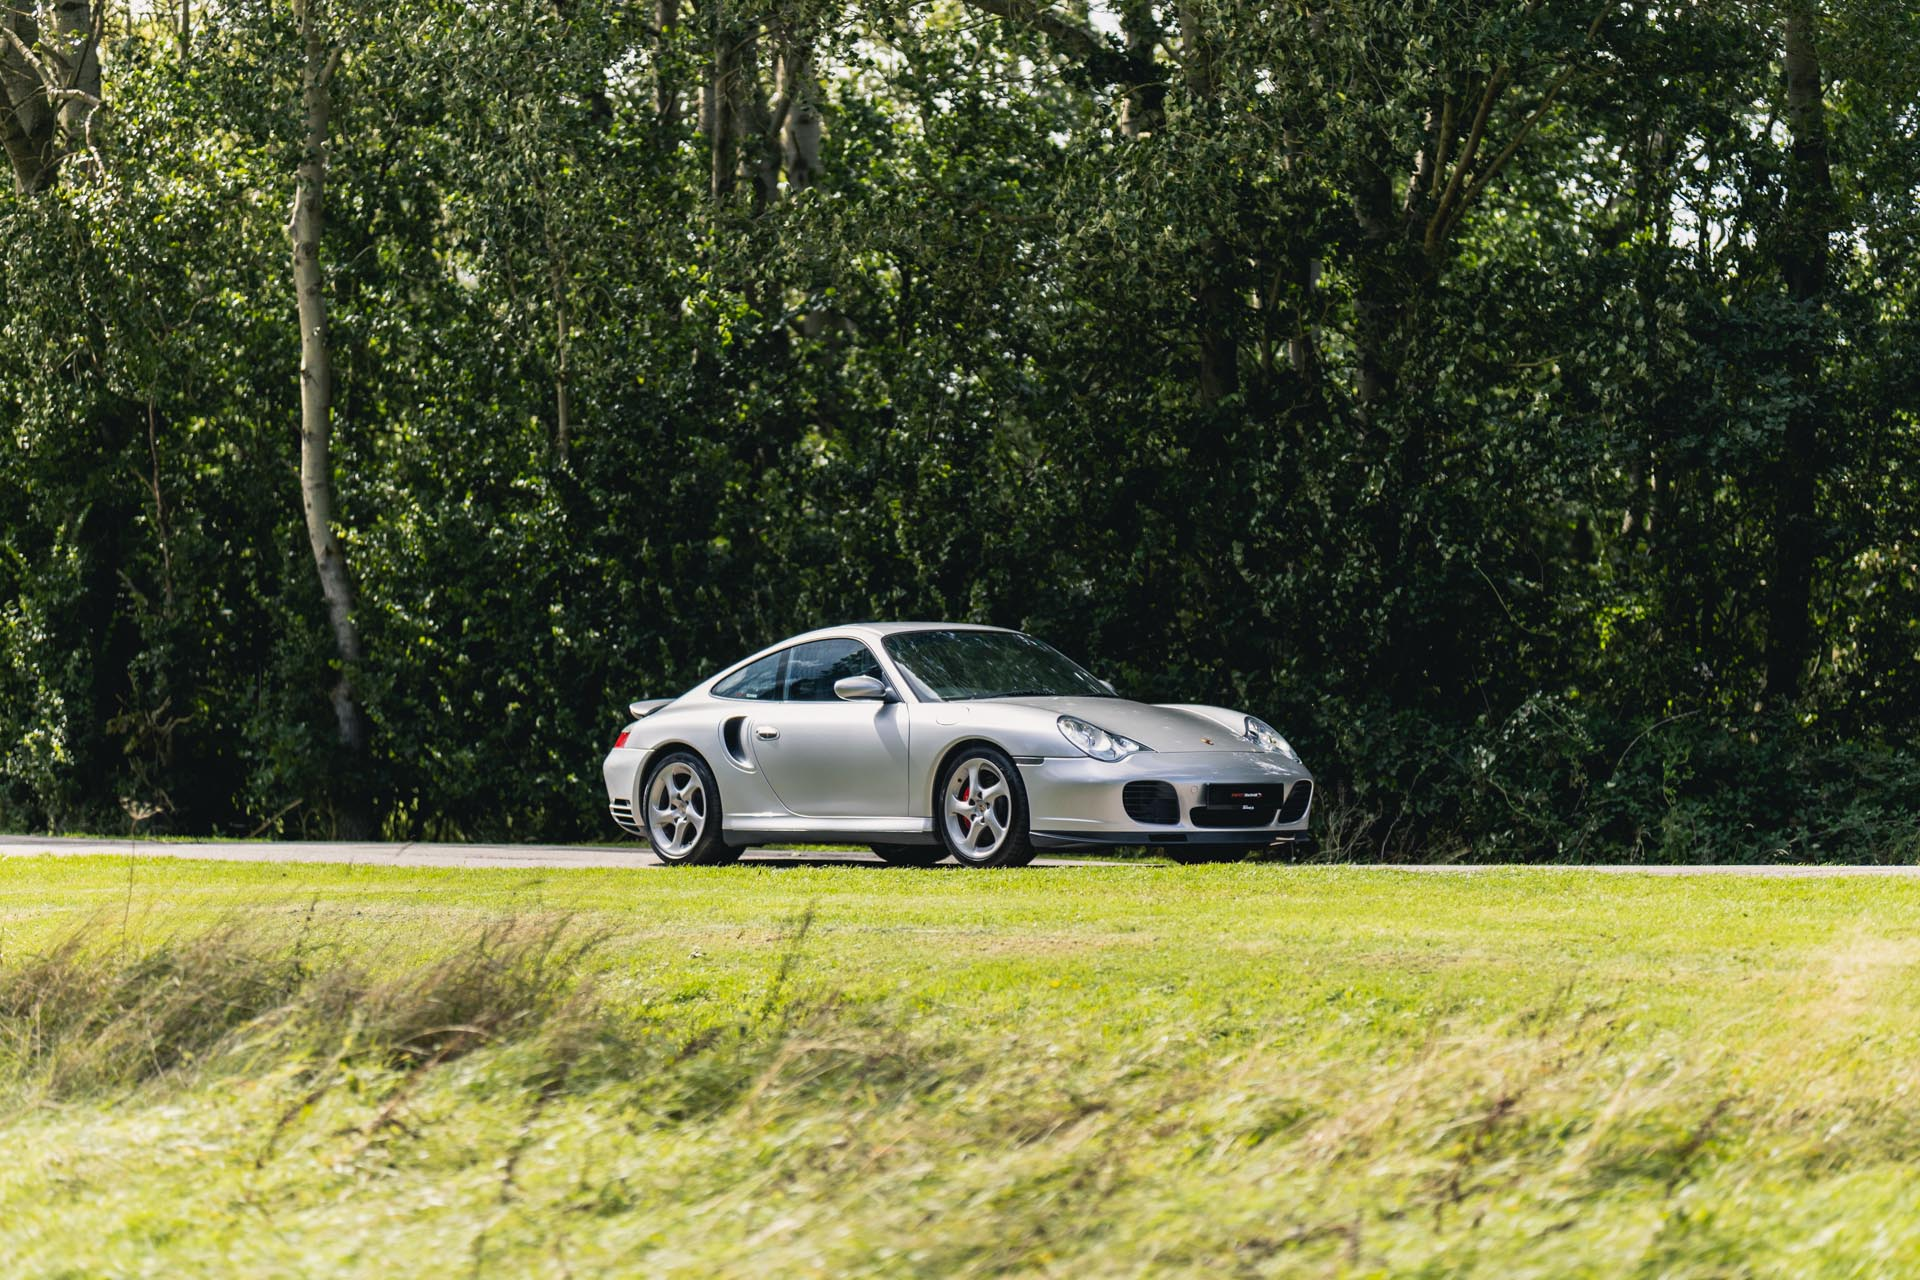 996-turbo-in-countryside